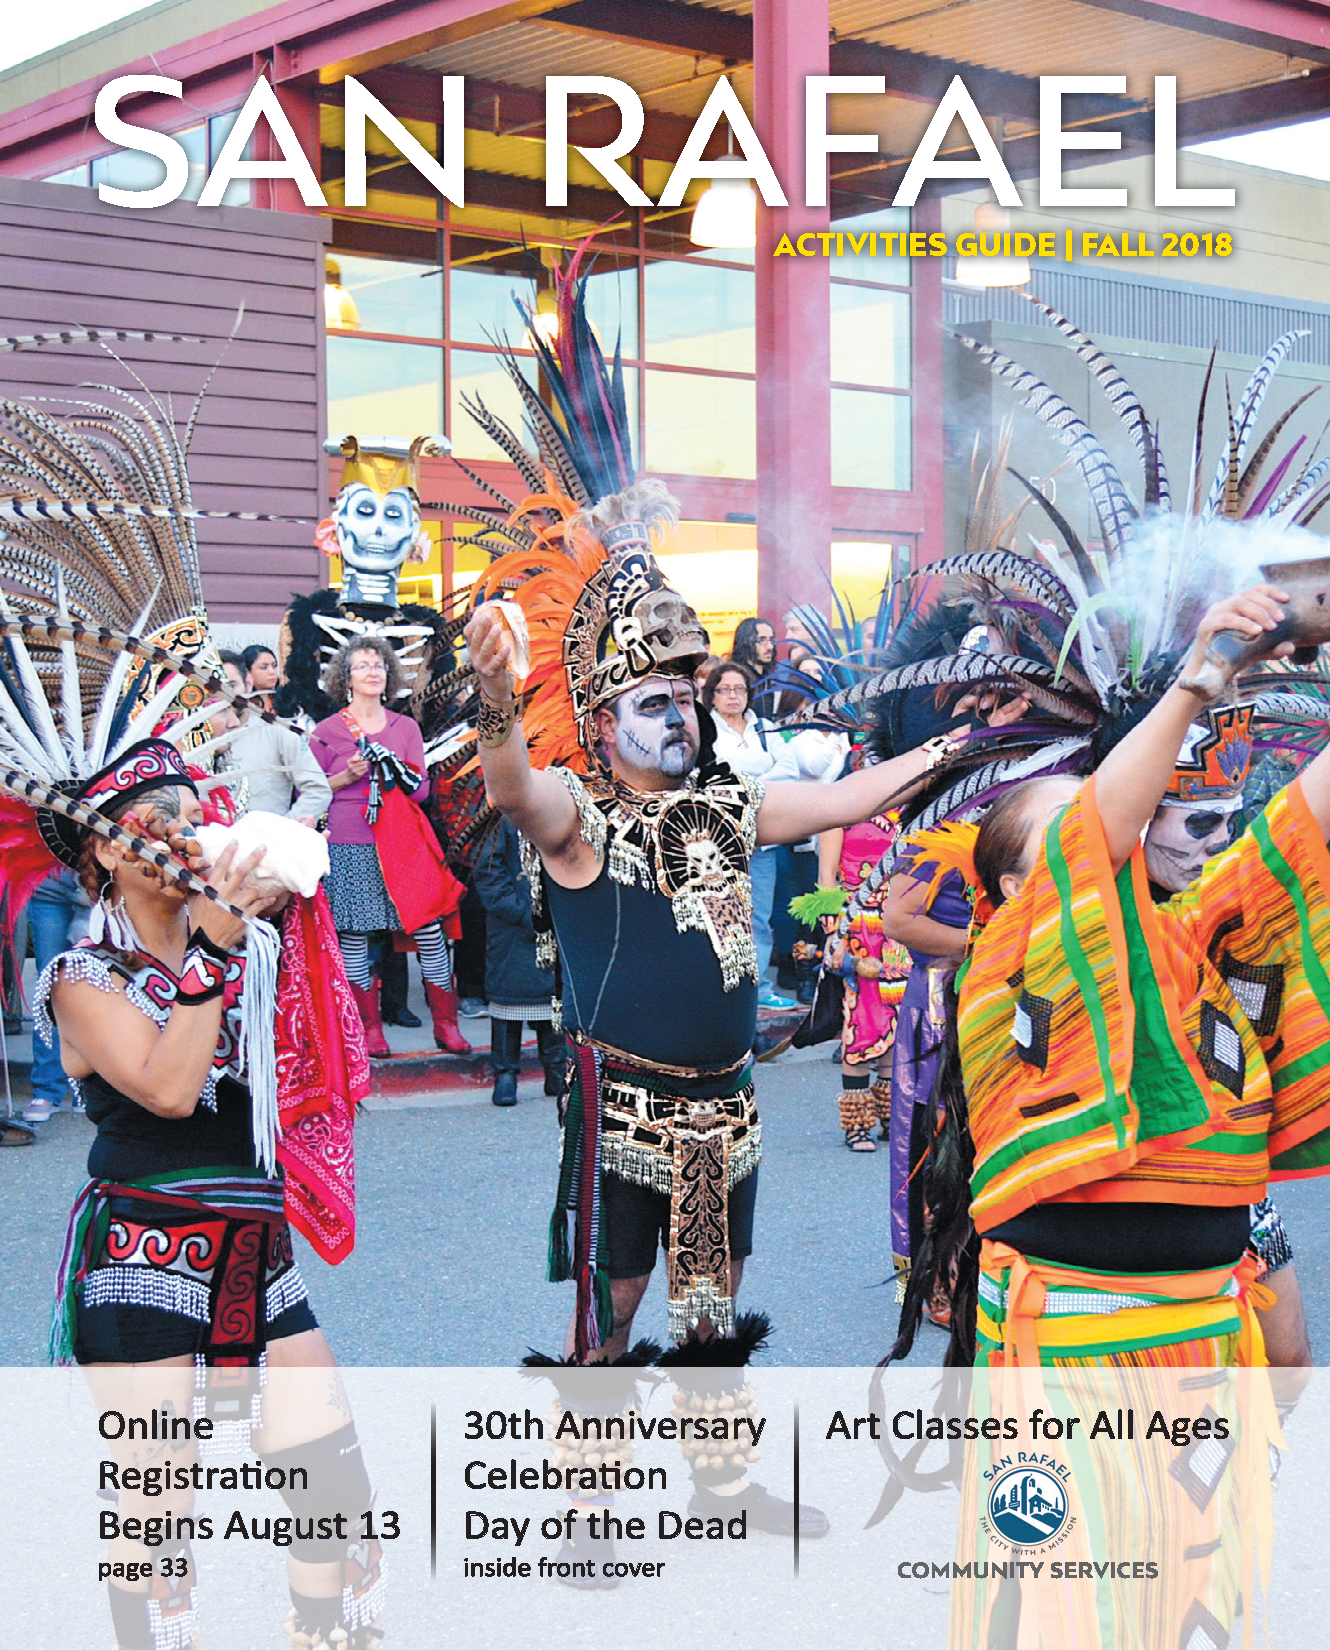 Image of San Rafael Activities Guide Fall 2018